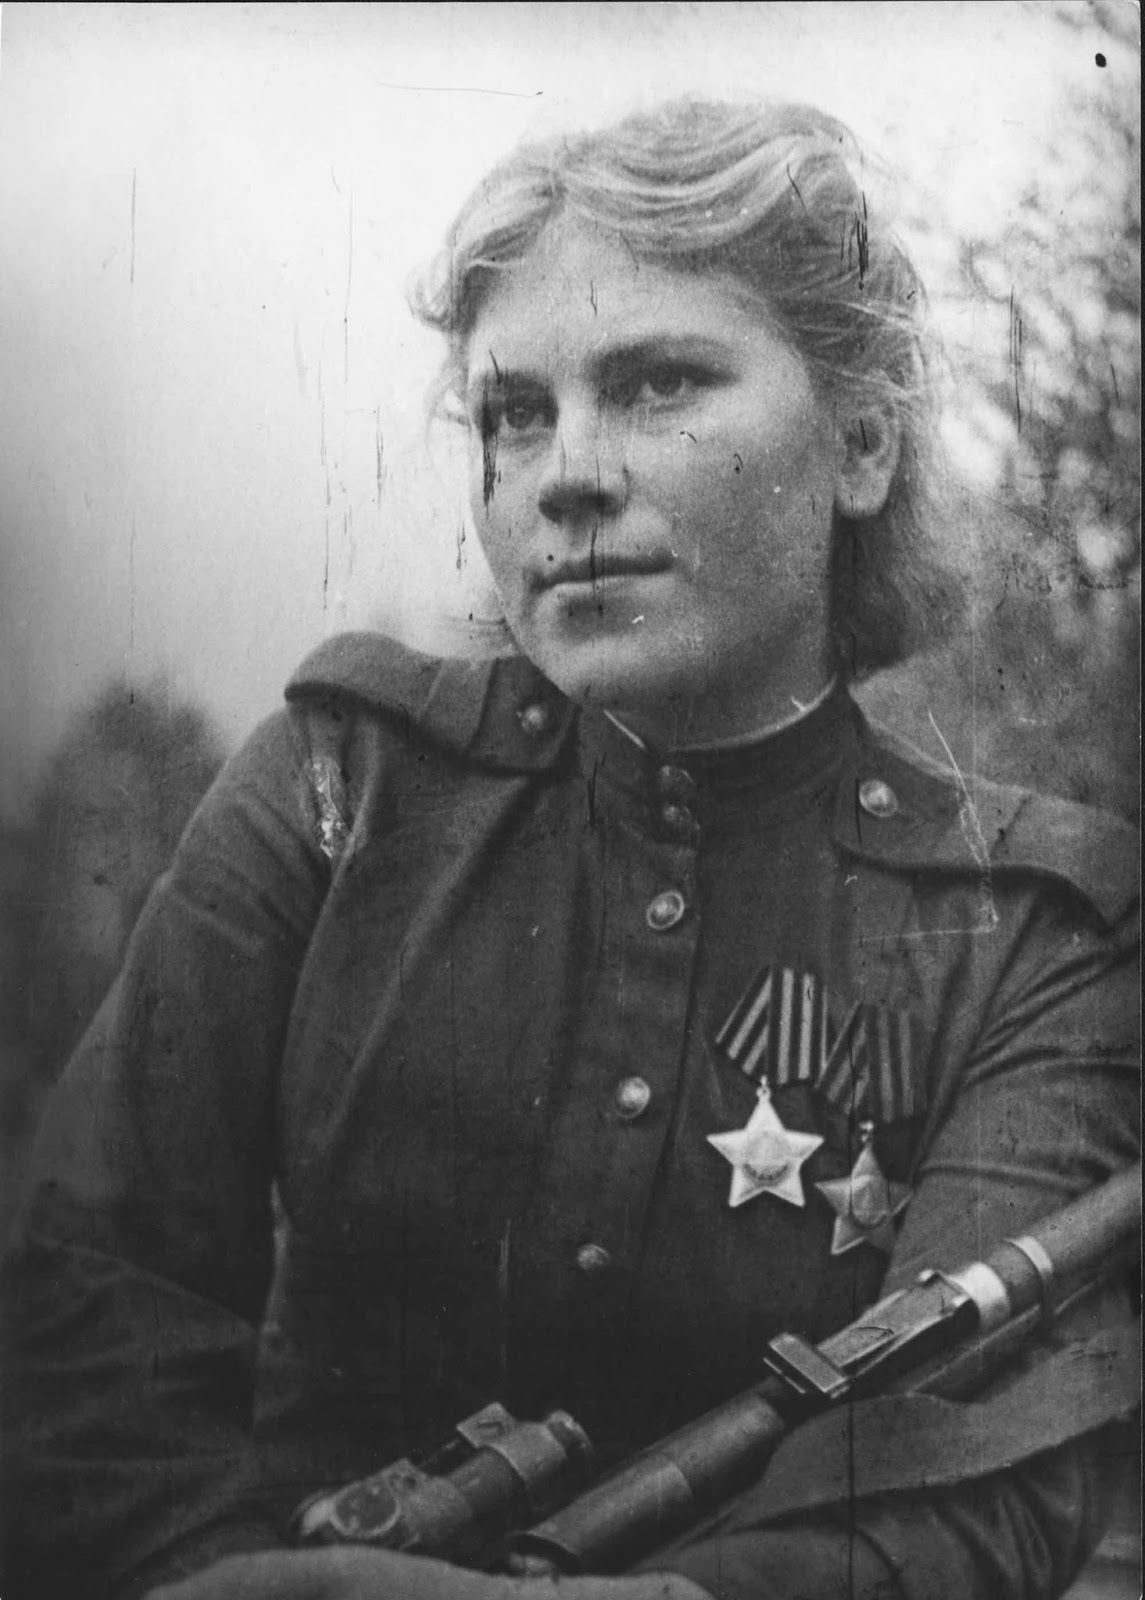 In December 1941, a death notification was received for her 19-year-old brother Mikhail, who had died during the Siege of Leningrad. In response, Shanina went to the military commissariat to ask for permission to serve.